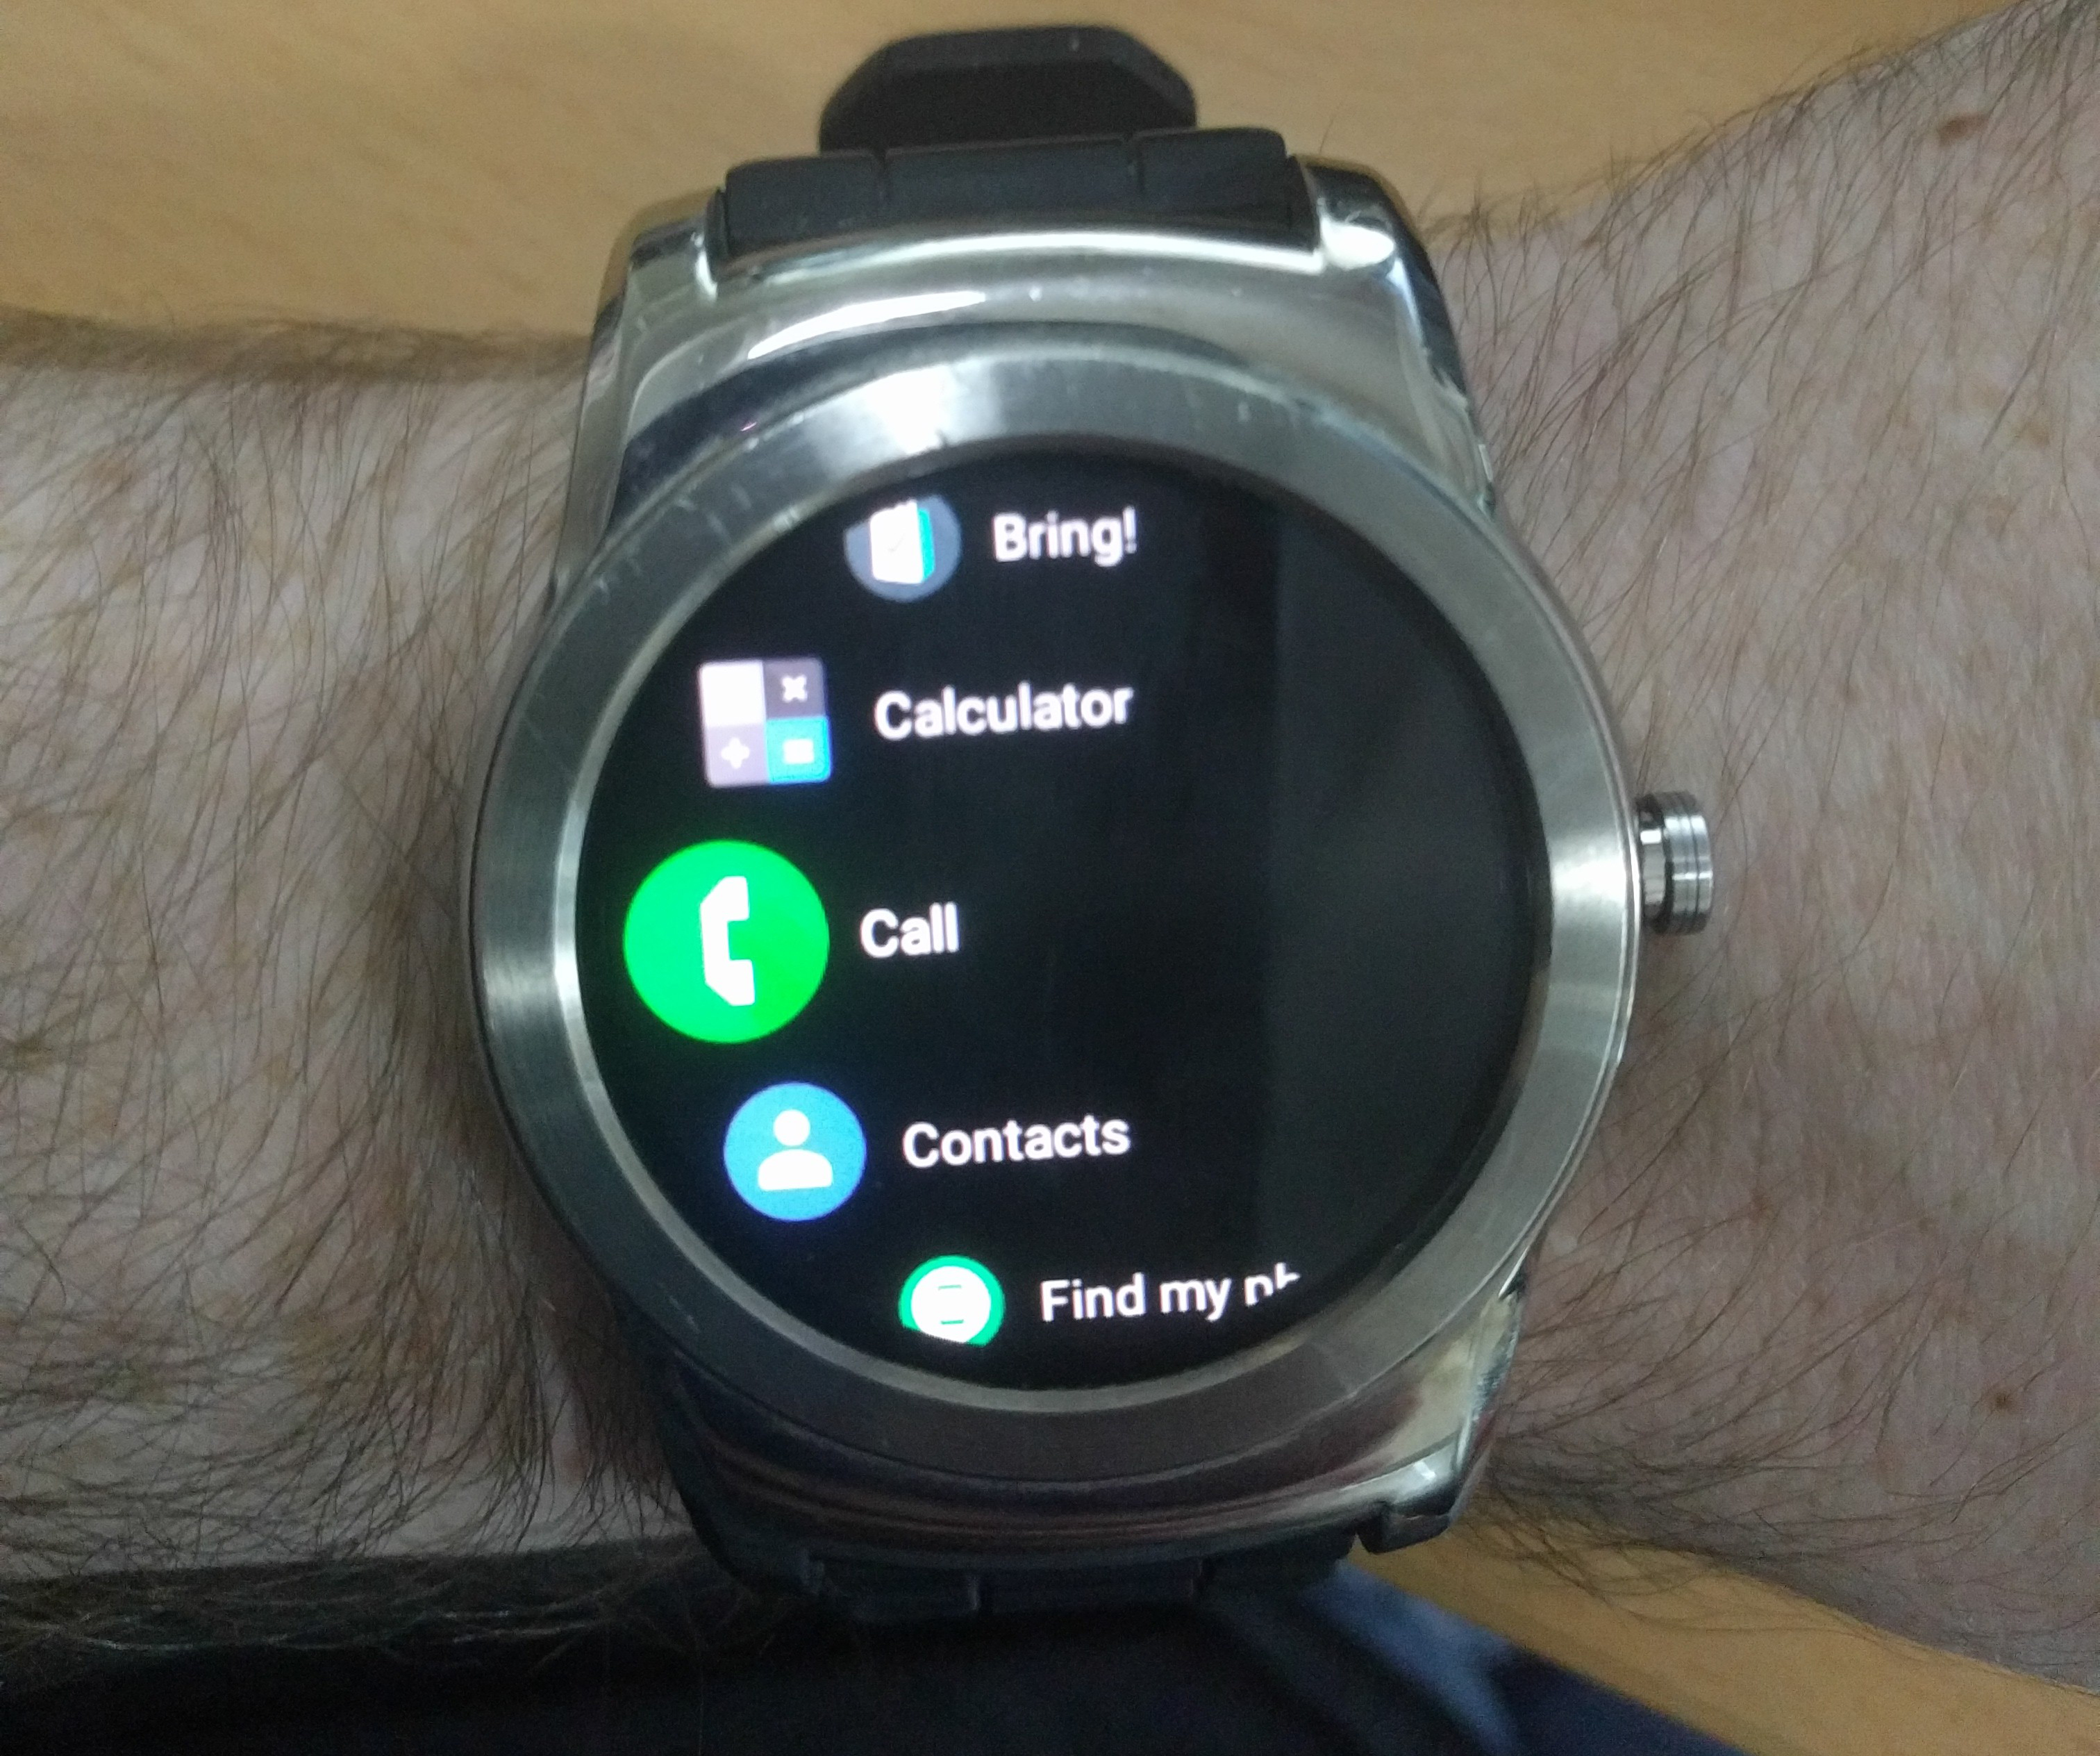 Android Wear android wear v2.8 app update adds darker background and